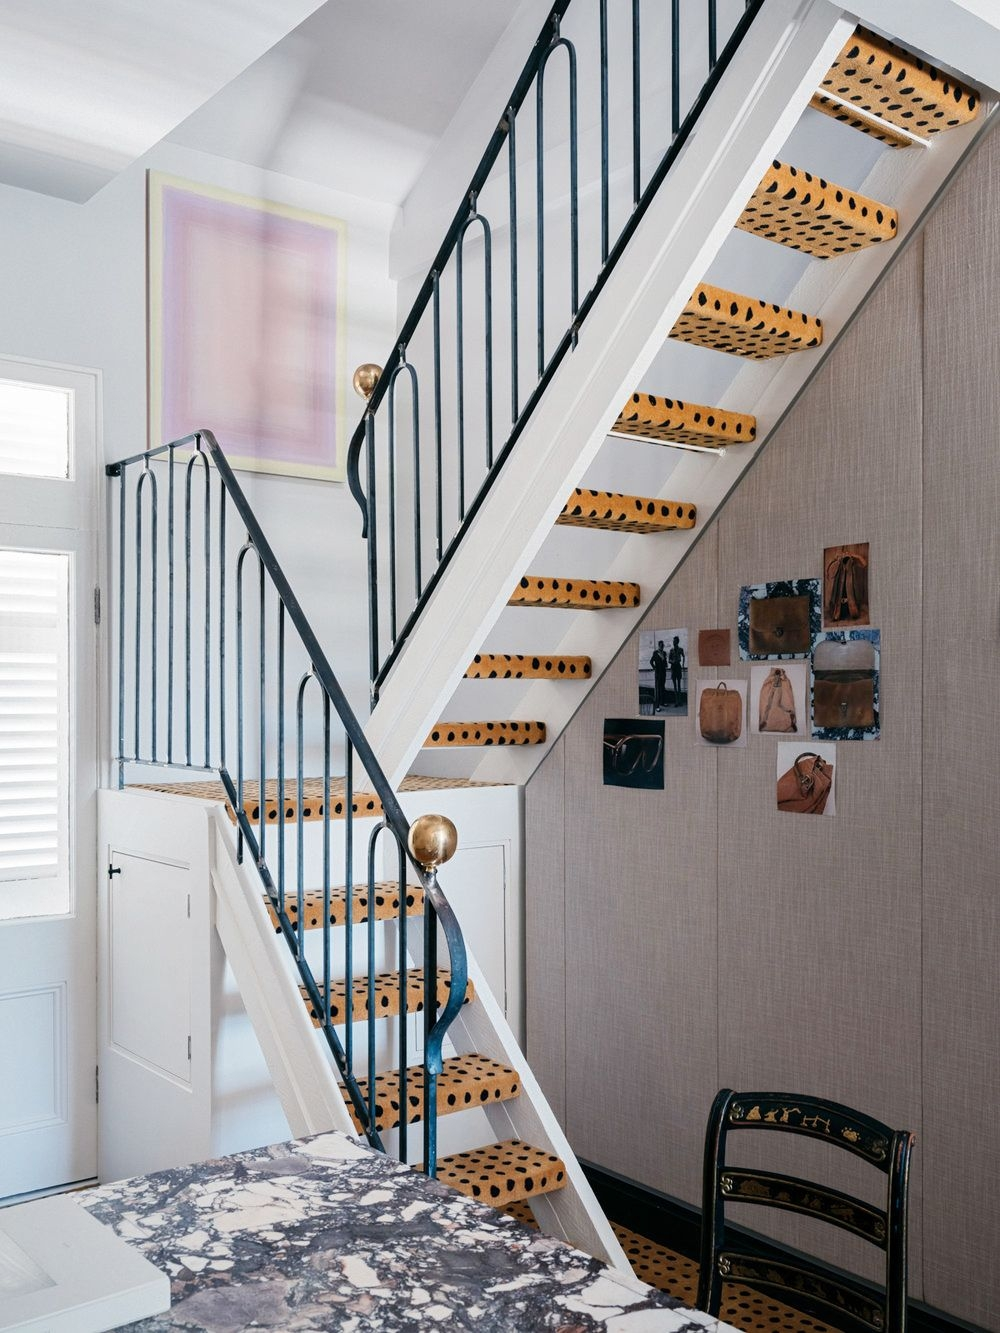 25 Unique Stair Designs Beautiful Stair Ideas For Your House | Small House Ladder Design | Low Cost | Small Residence | Middle Class Duplex House | Small Living Room Stair | Simple